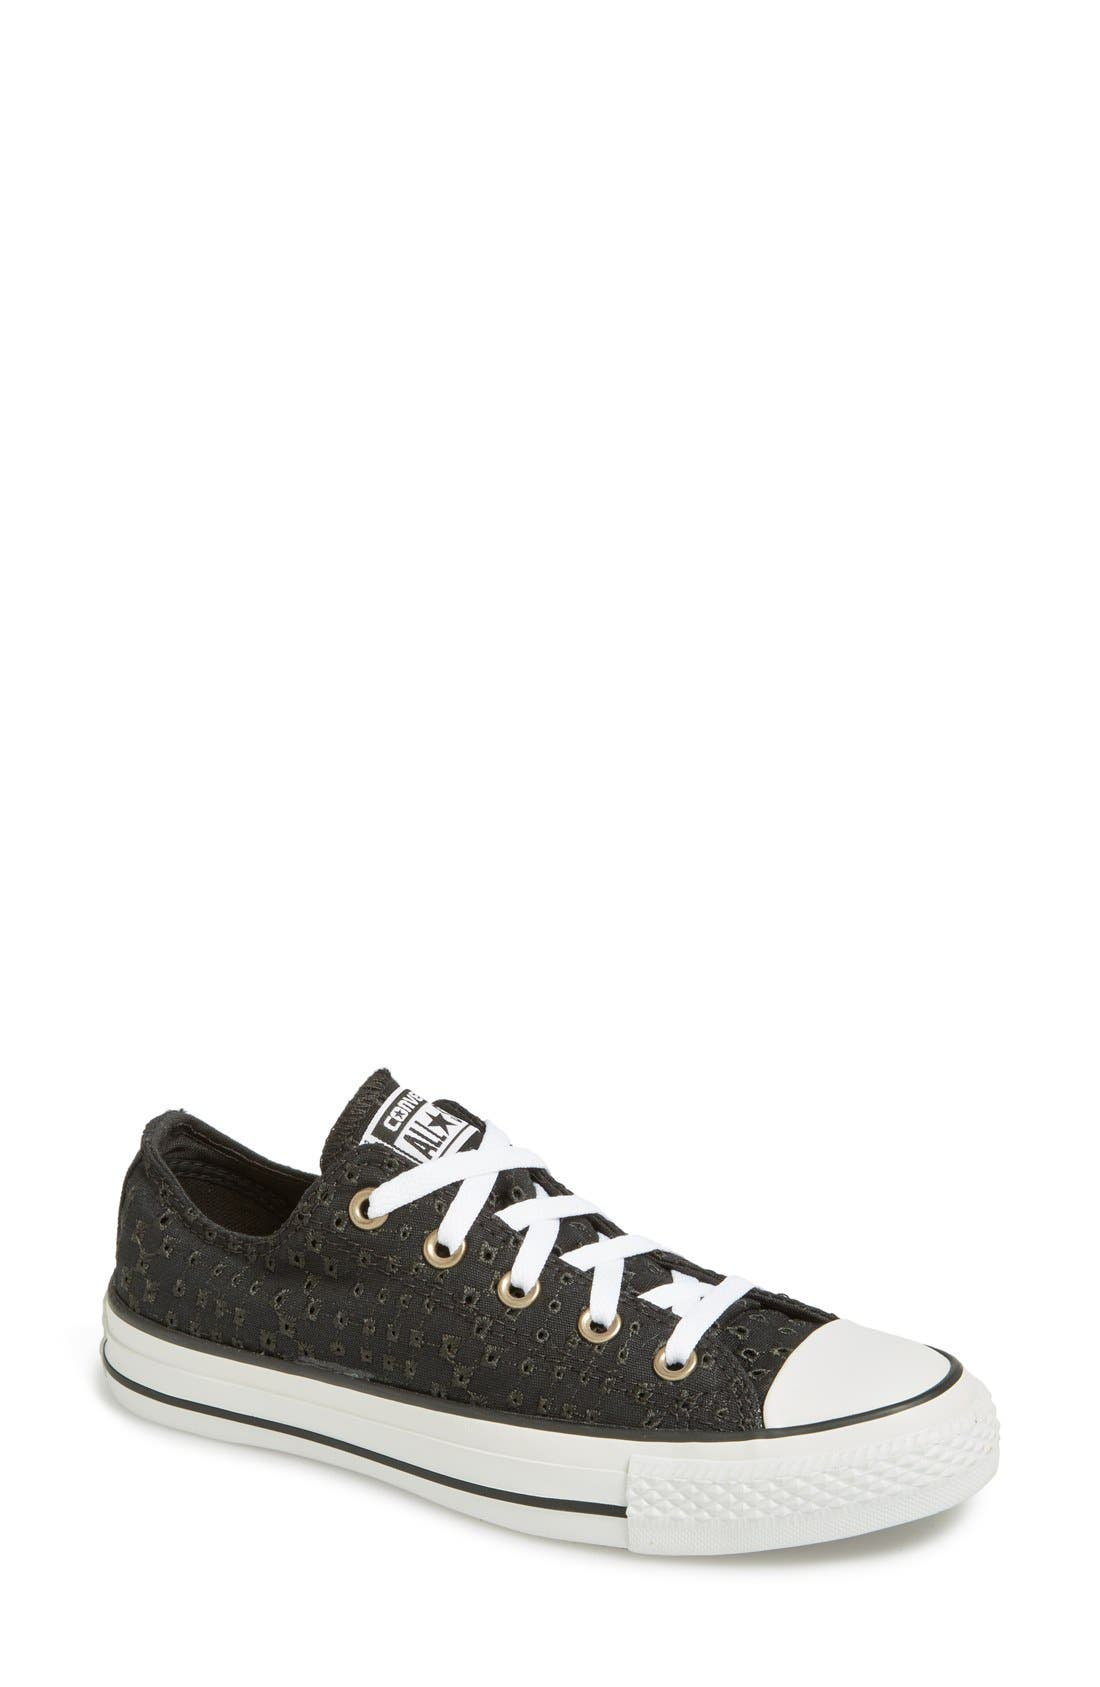 Alternate Image 1 Selected - Converse Chuck Taylor® All Star® 'Low' Eyelet Perforated Sneaker (Women)